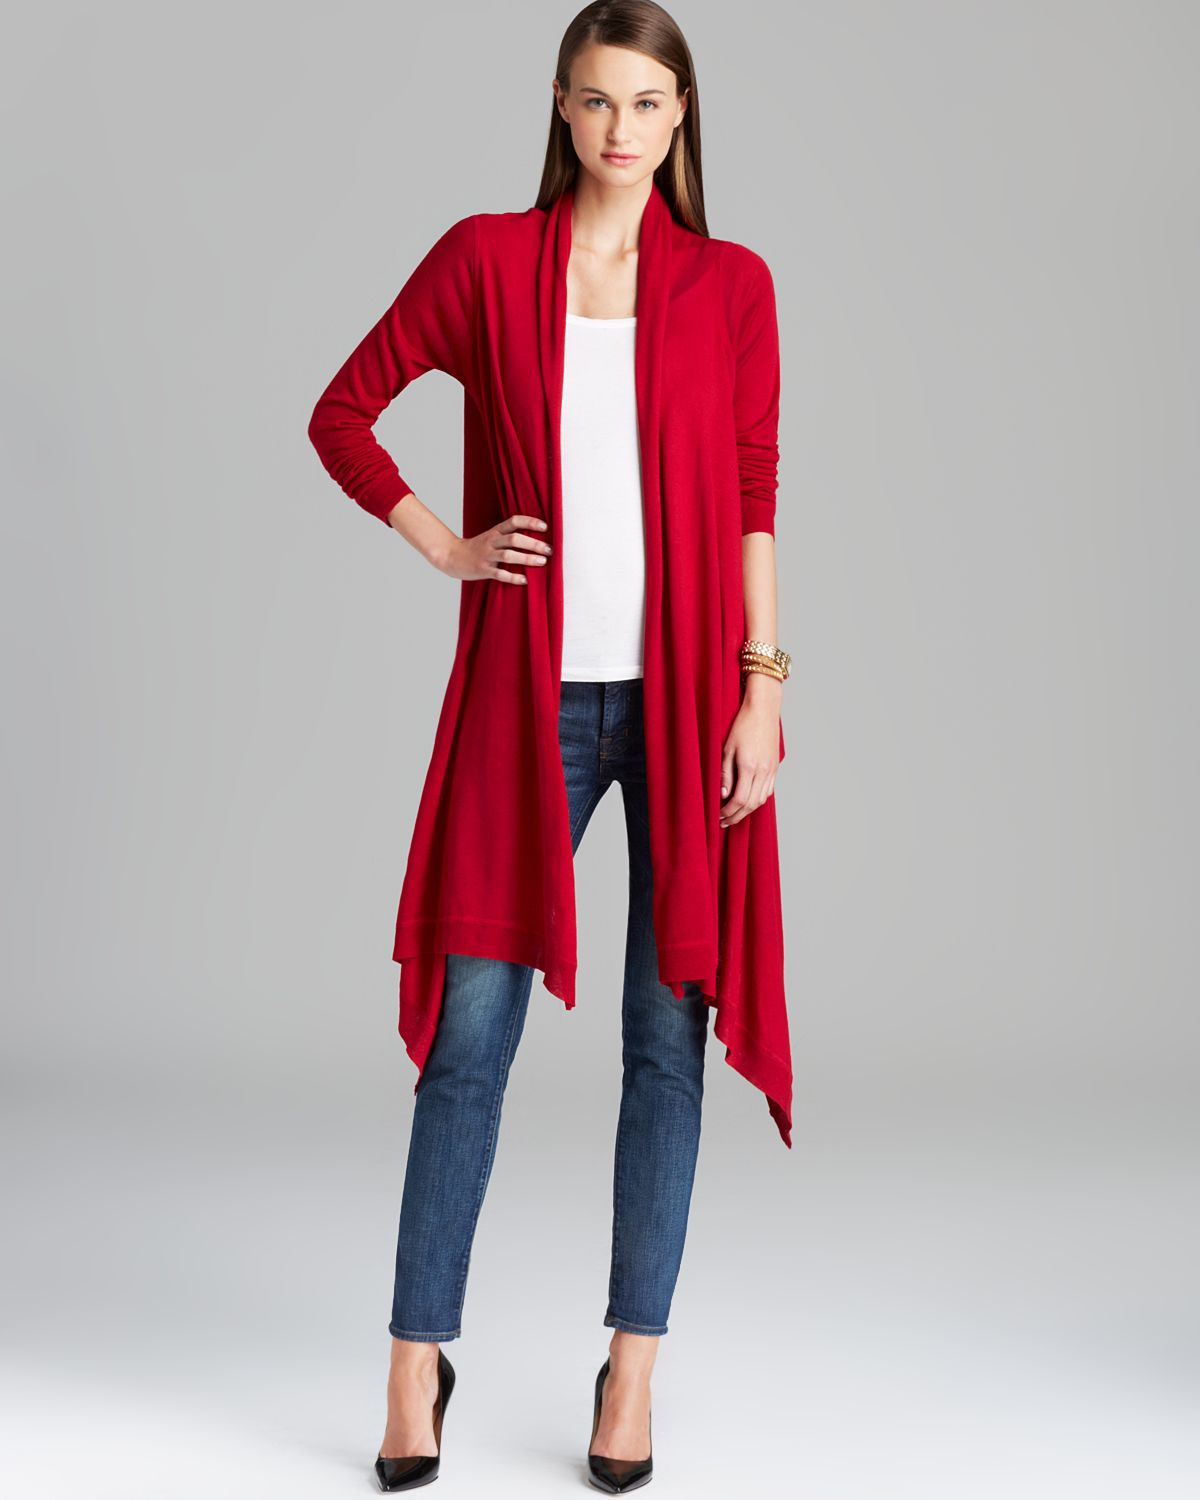 Womens Long Red Cardigan Sweater - Coat Nj